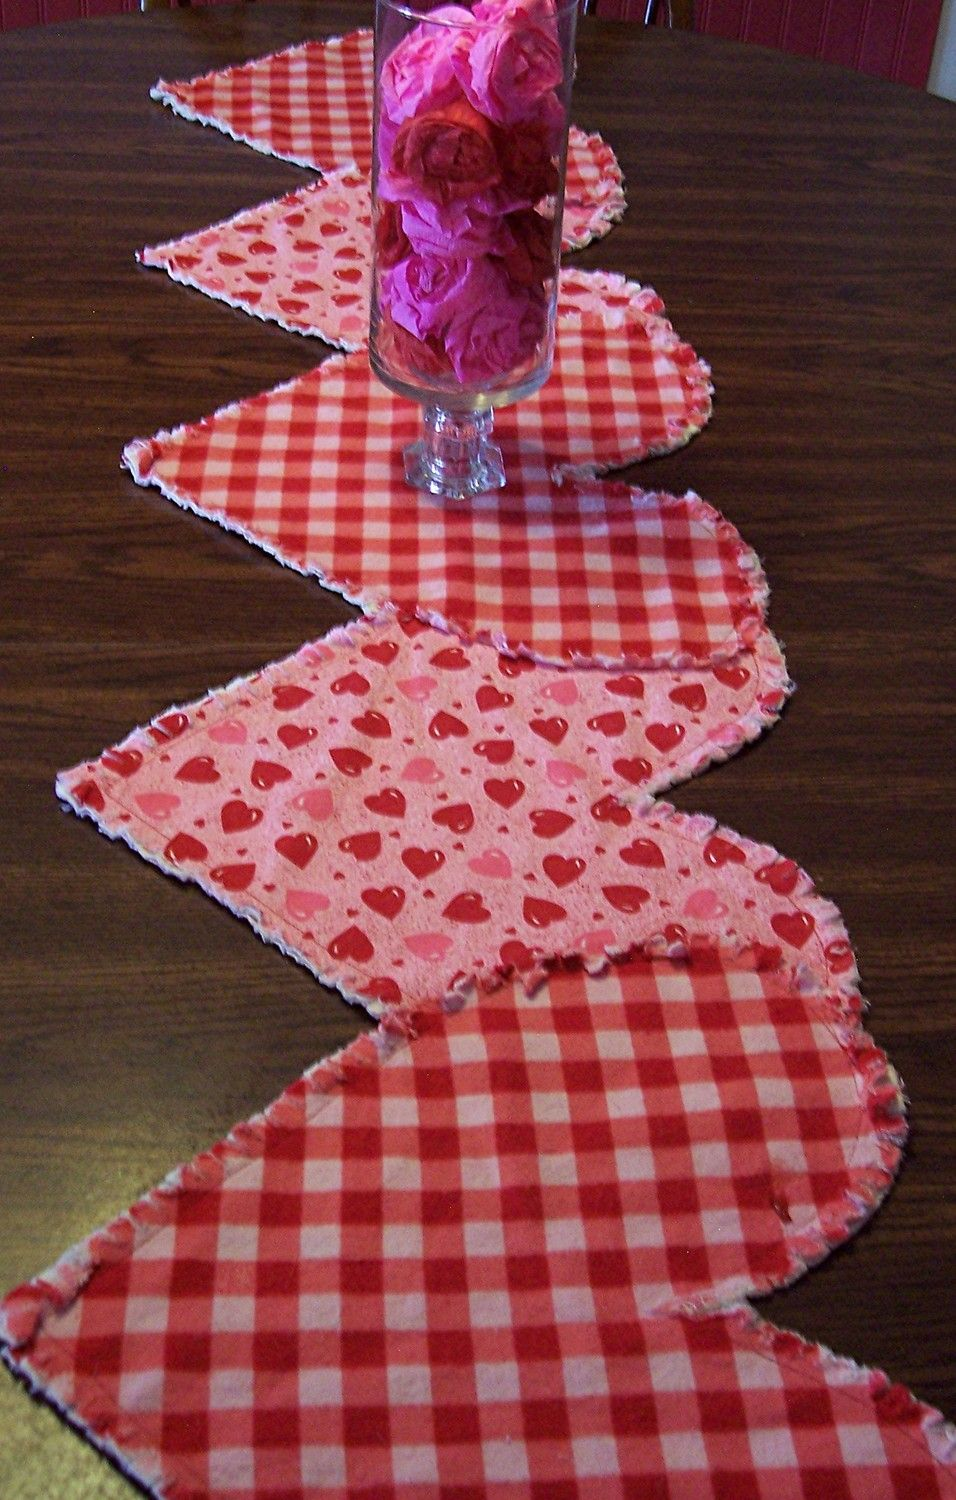 Valentine Table Runner Ruffled Heartstrings Pink And Red Table Centerpiece Raw Edge Whimsical Ruby Red Bubblegum Pink Valentine Table Runner Valentine Crafts Valentines Day Decorations